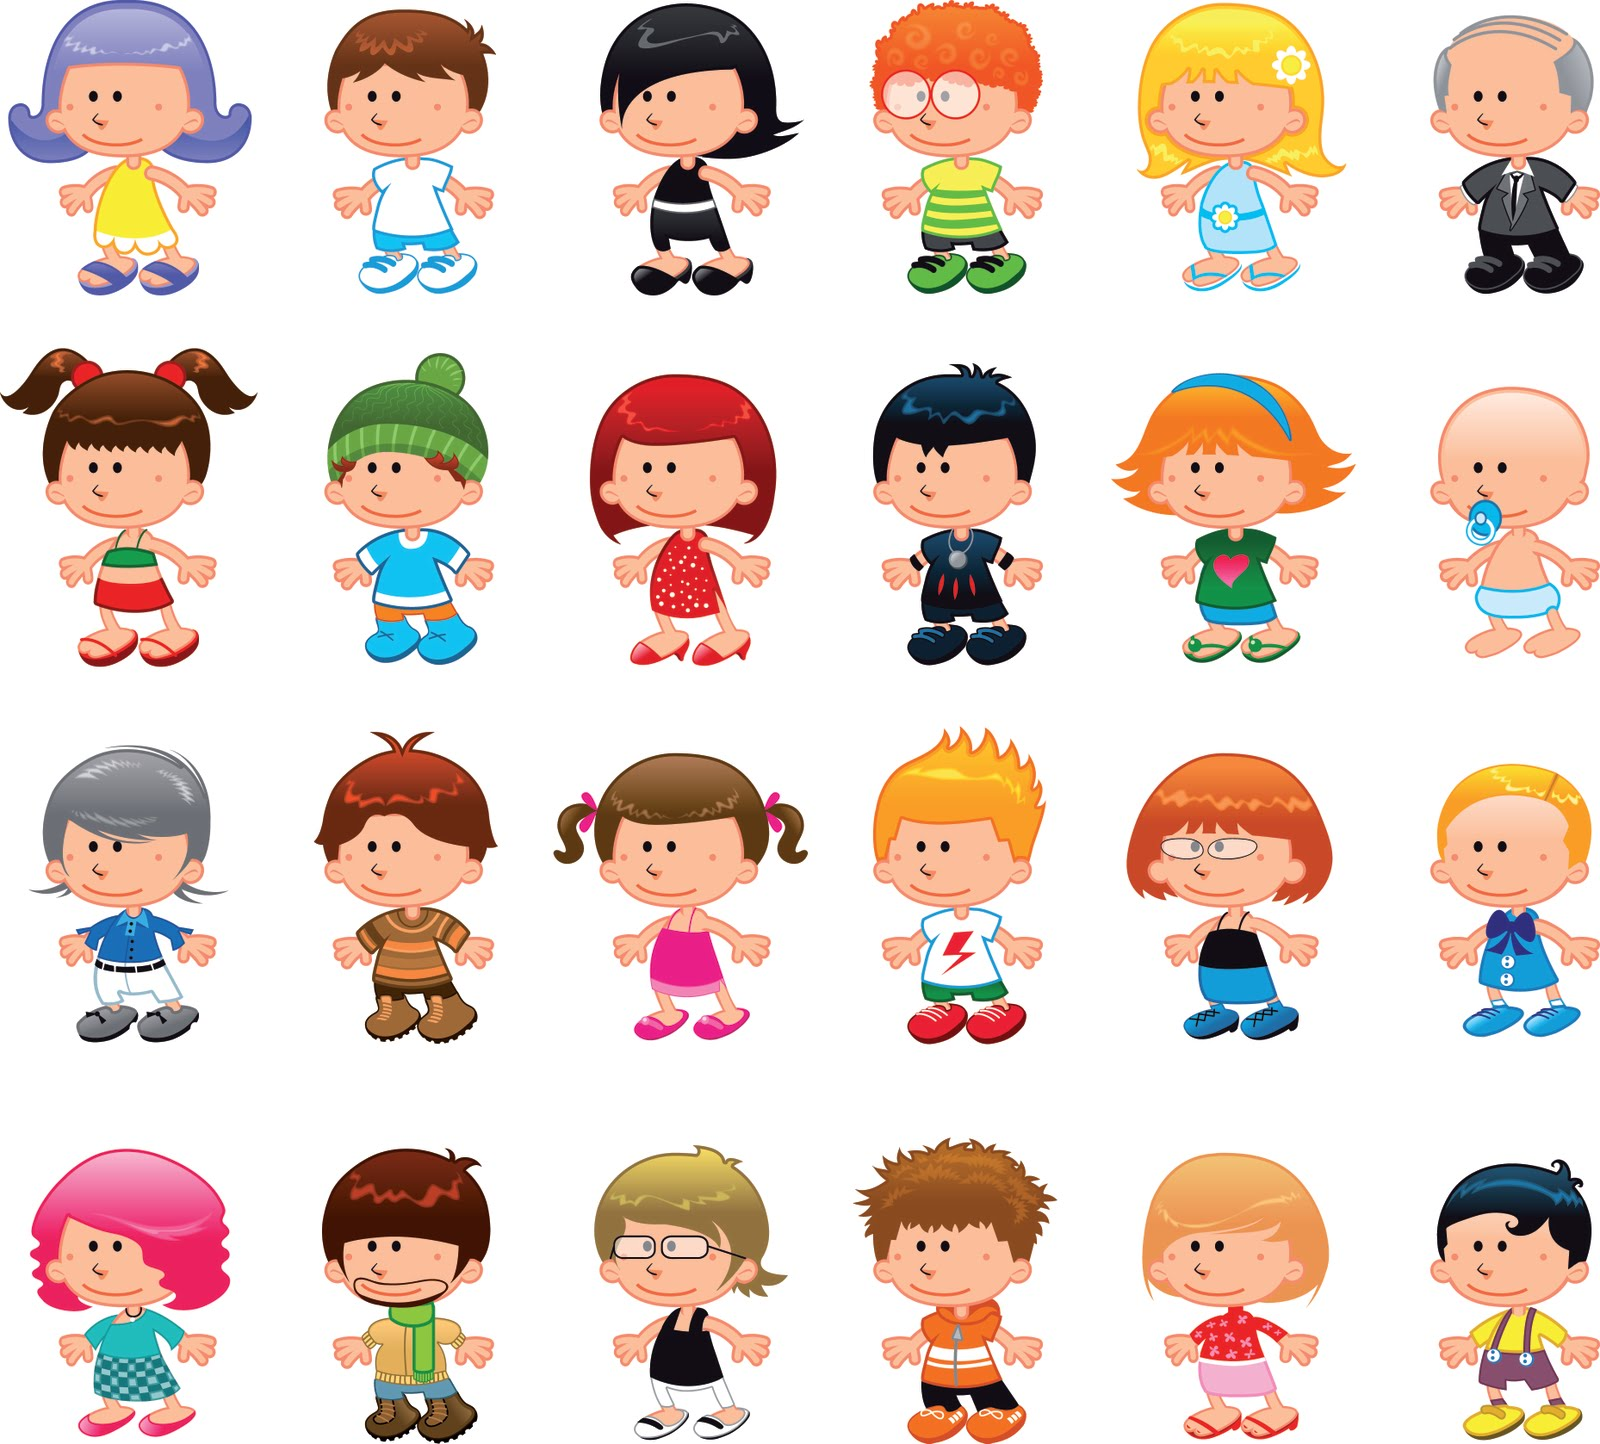 Cartoon Characters Personalities : Insidesign